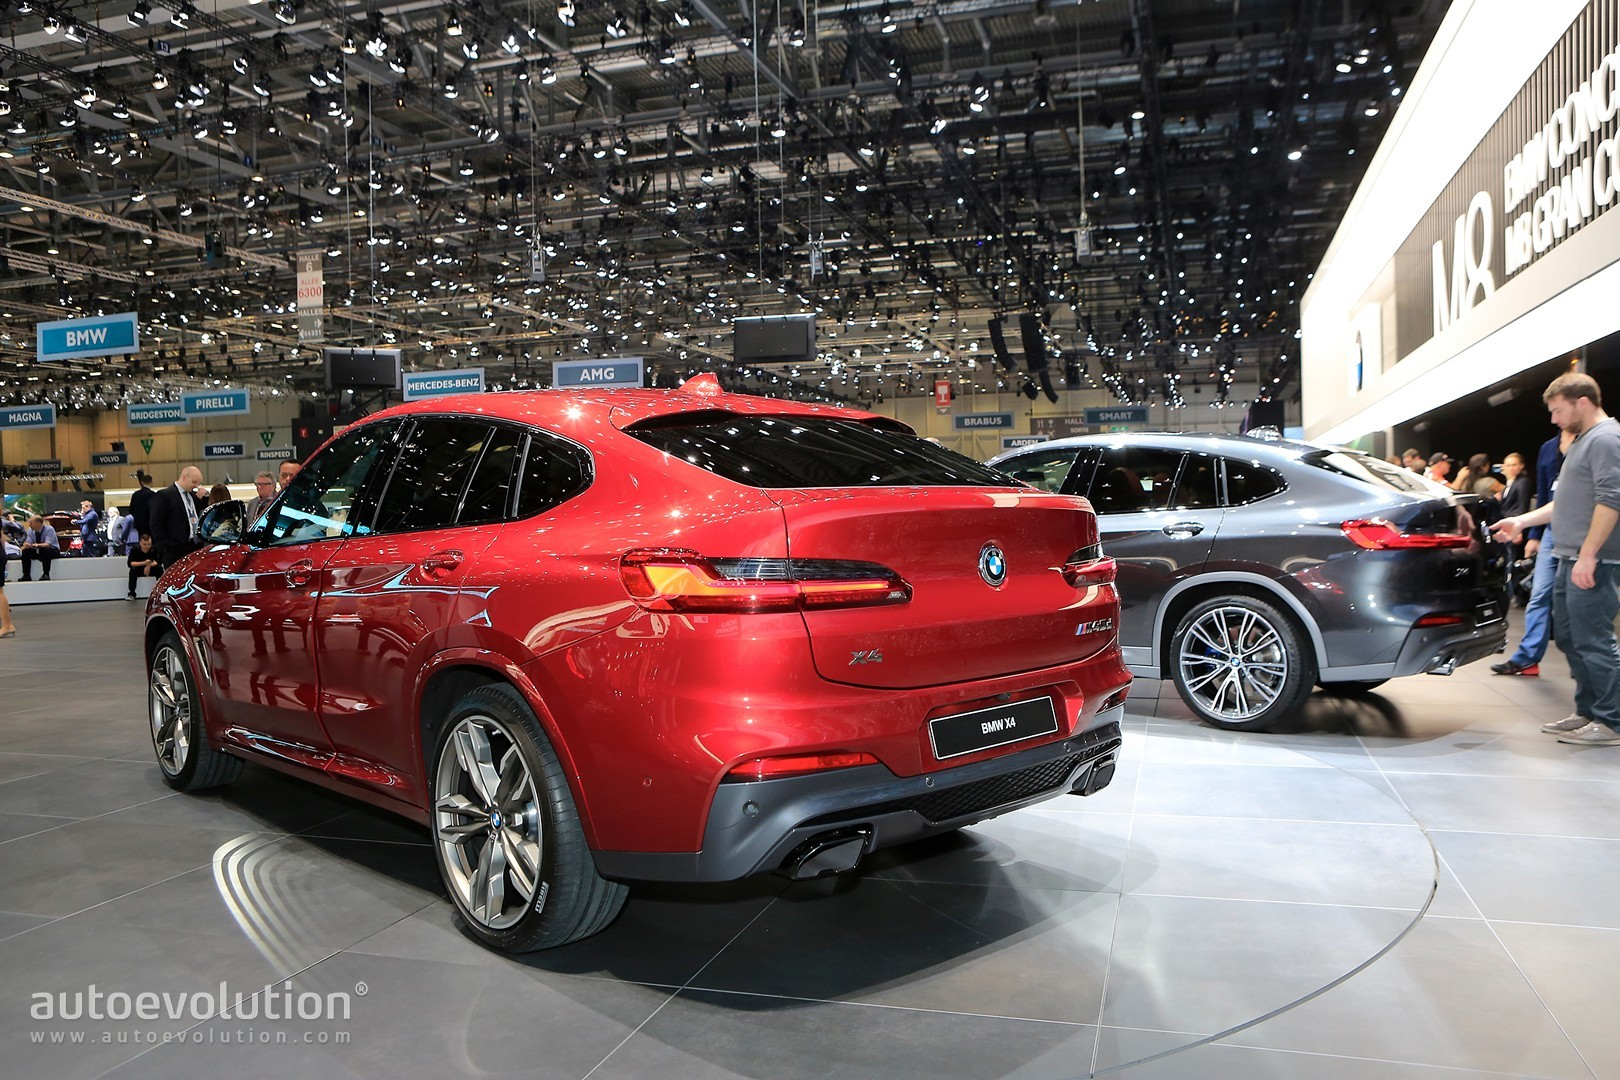 2019 Bmw X4 Uk Review Says It Drives Better Than Glc Coupe